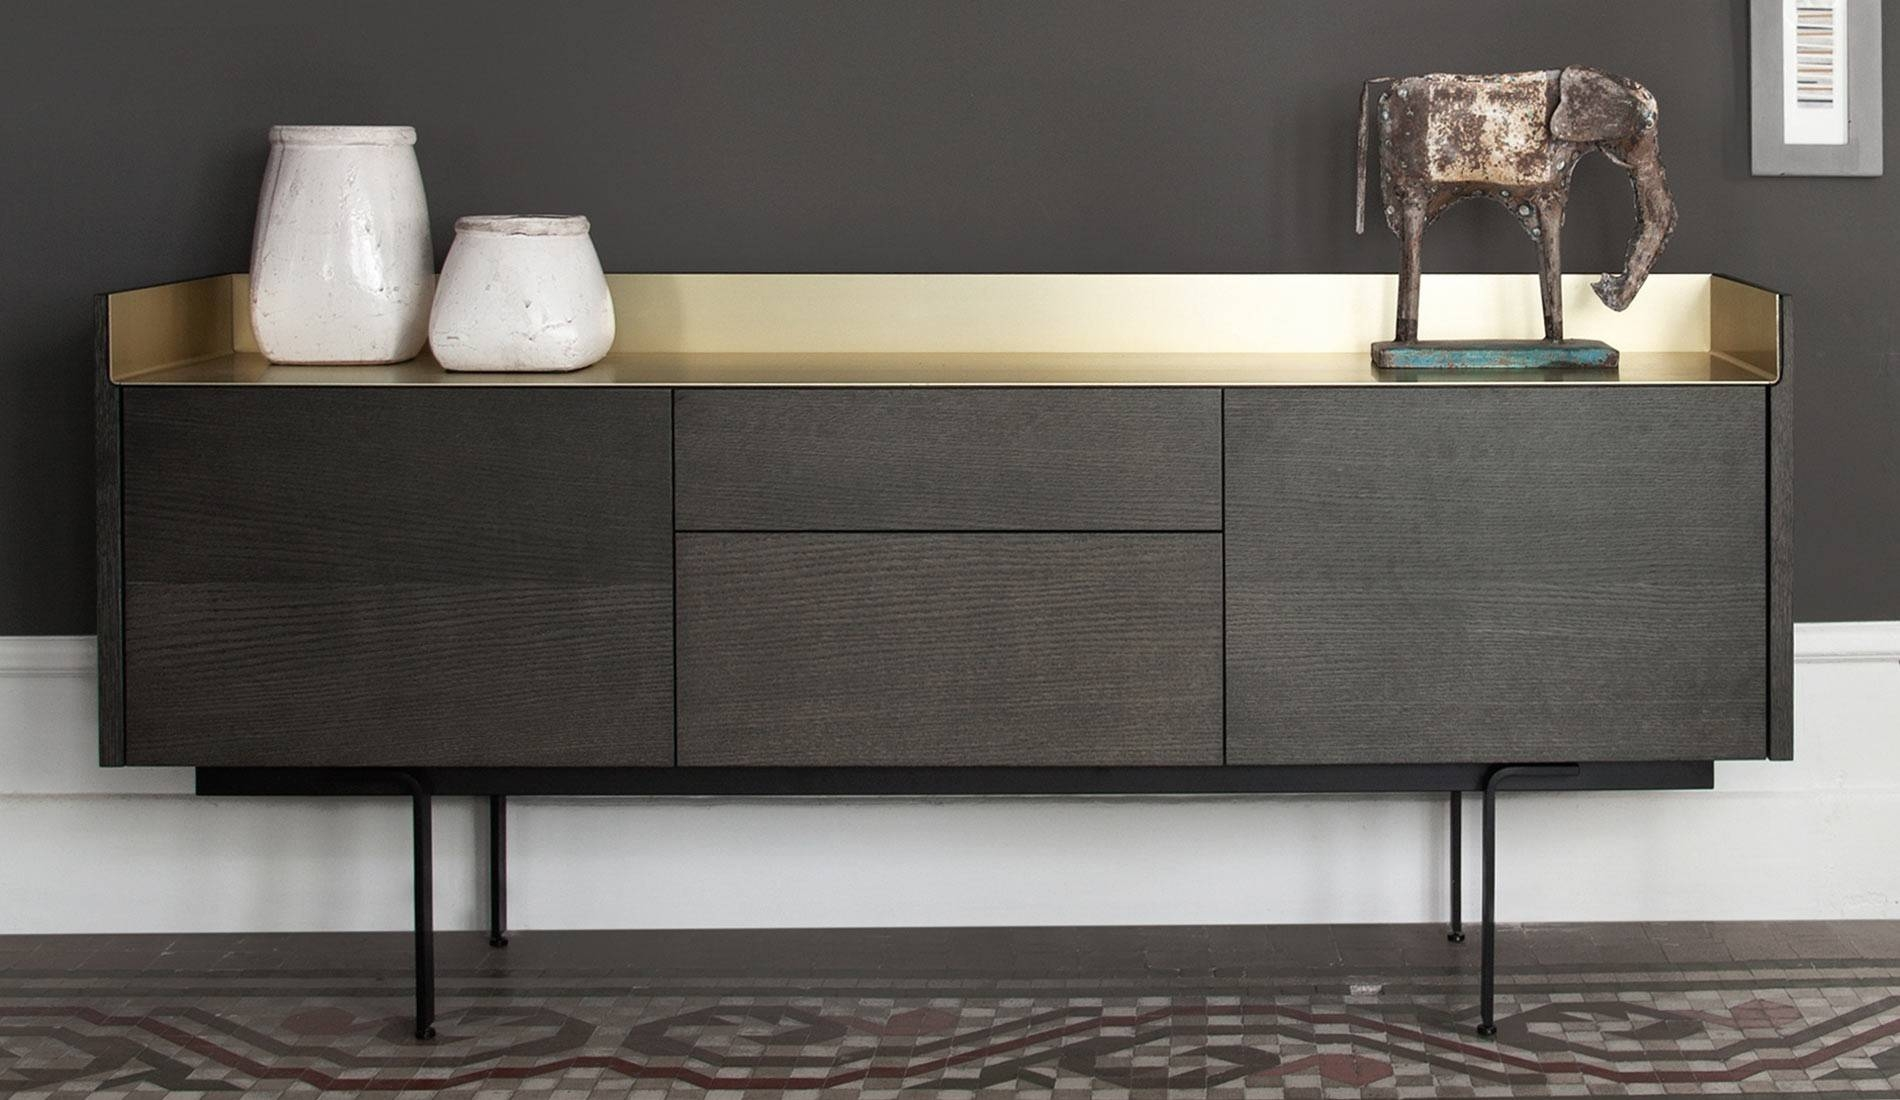 Punt Stockholm 3B Sideboard | Dopo Domani Pertaining To Stockholm Sideboards (View 6 of 15)